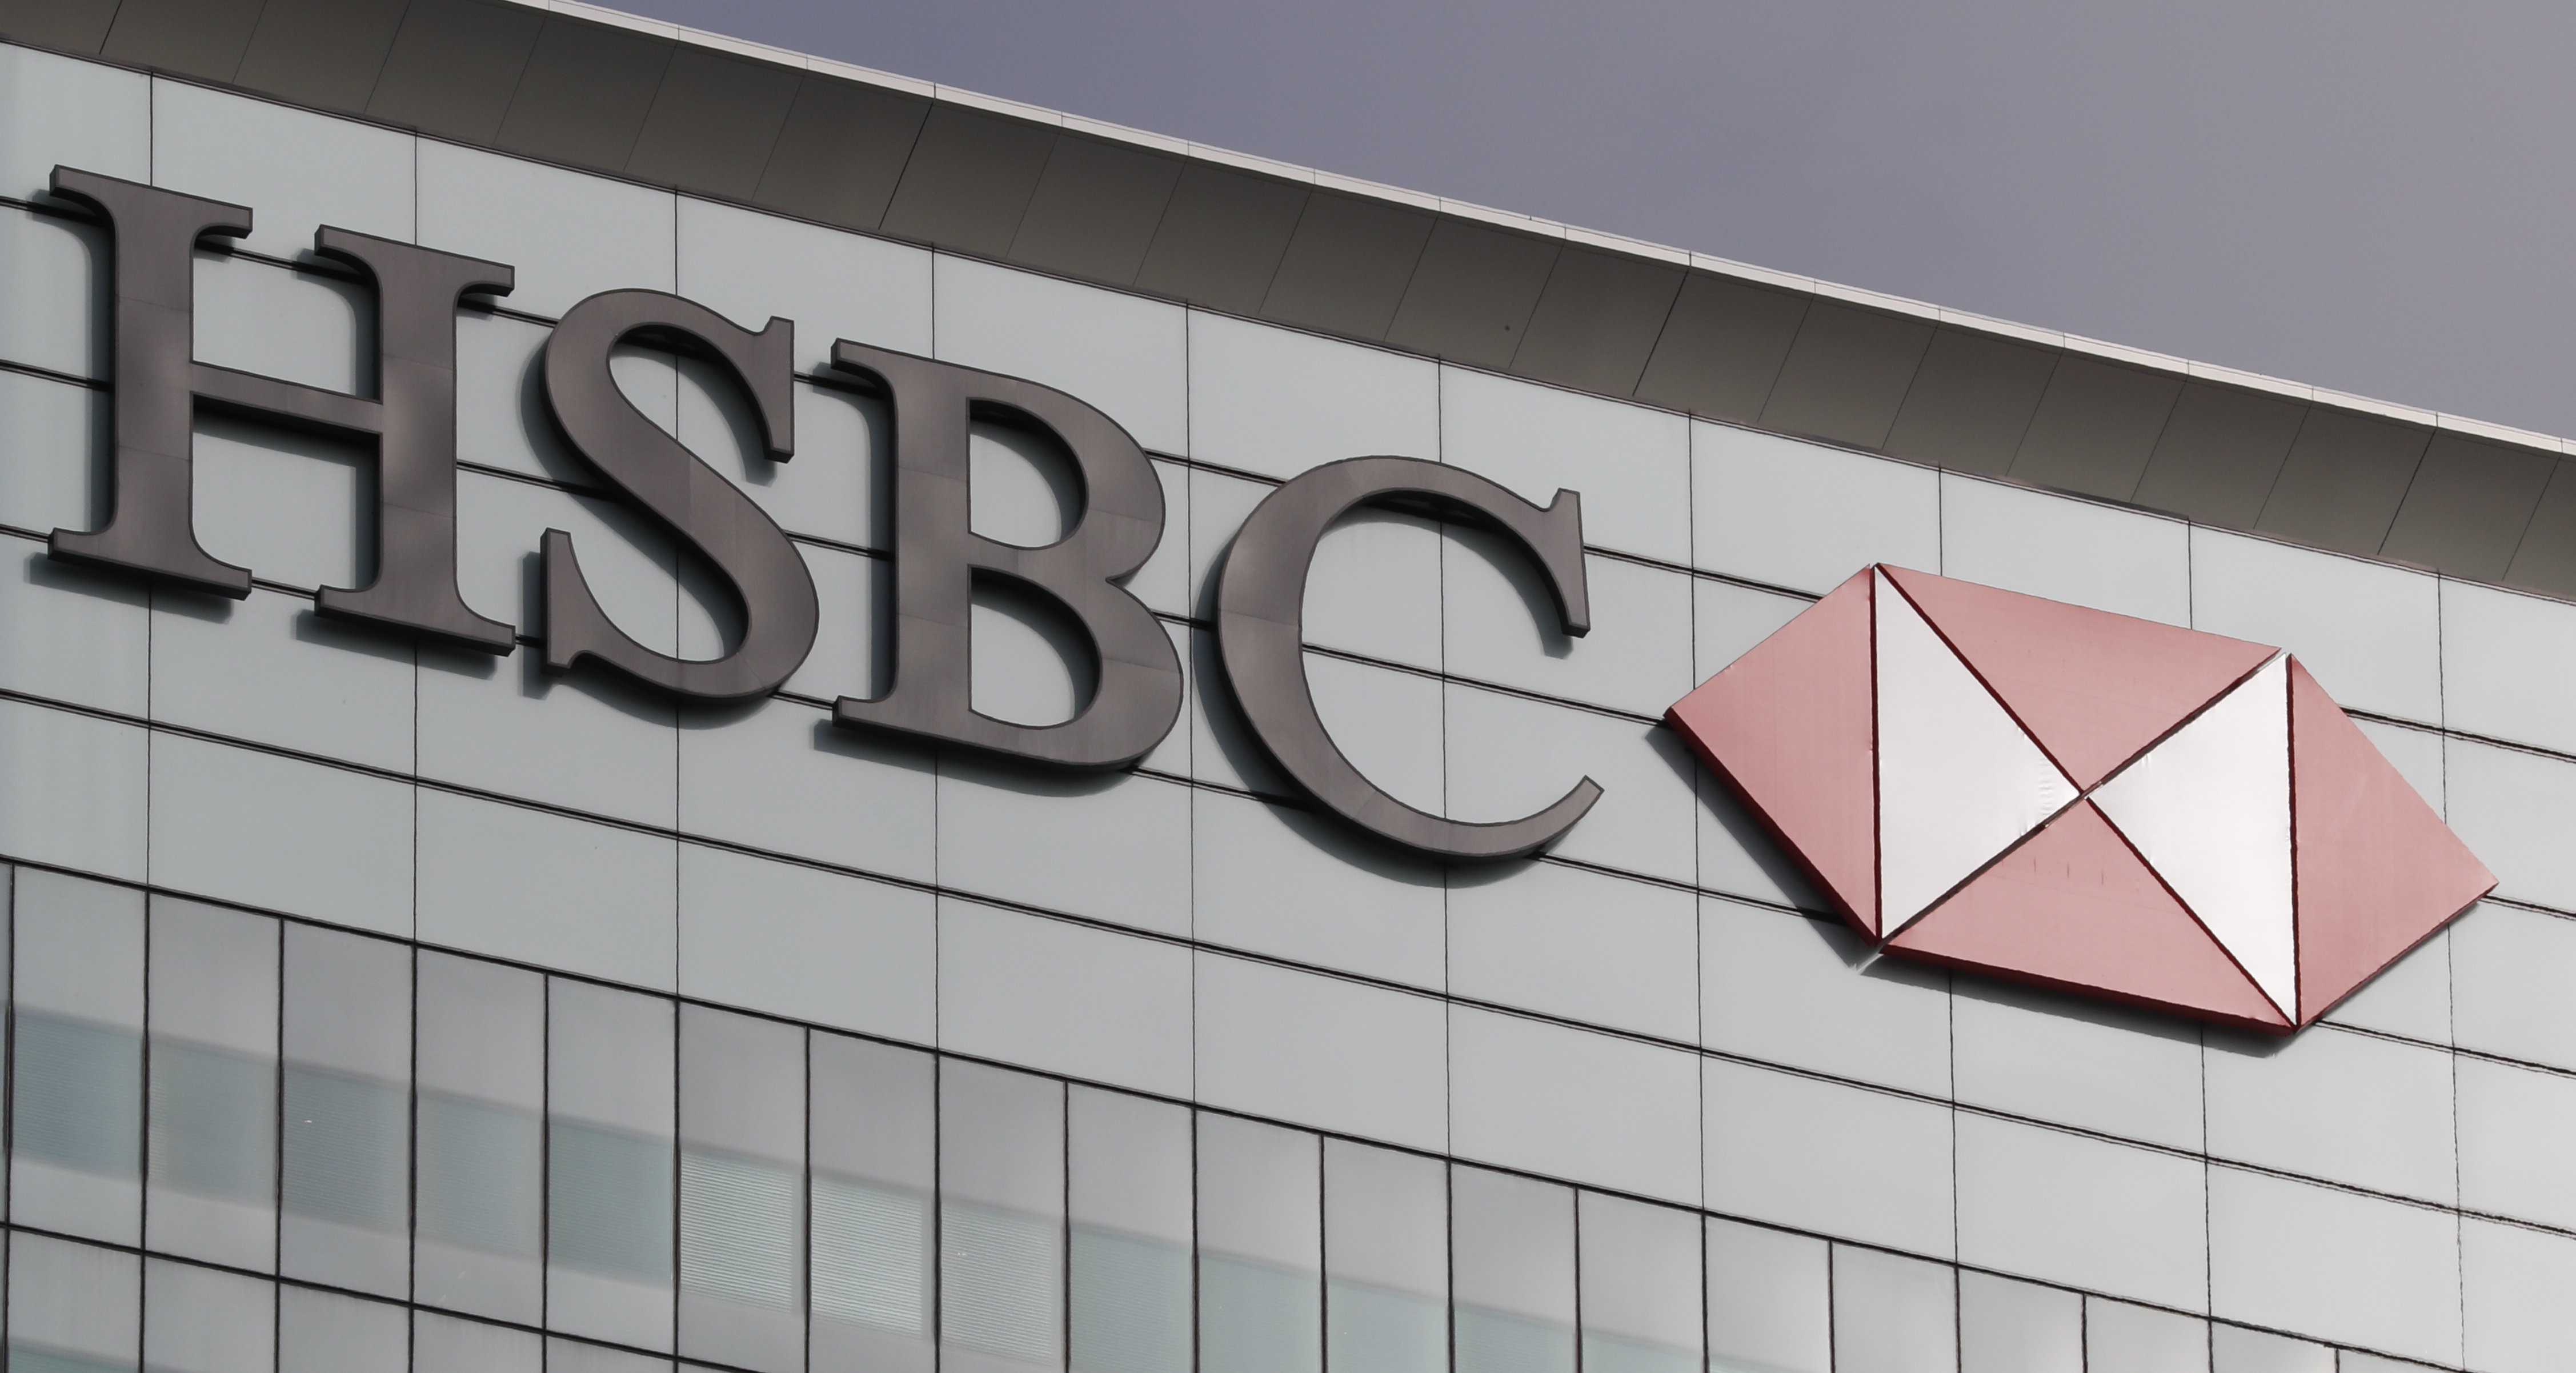 The HSBC logo is seen at their offices at Canary Wharf financial district in London,Britain, March 3, 2016.  REUTERS/Reinhard Krause - RTS94GN